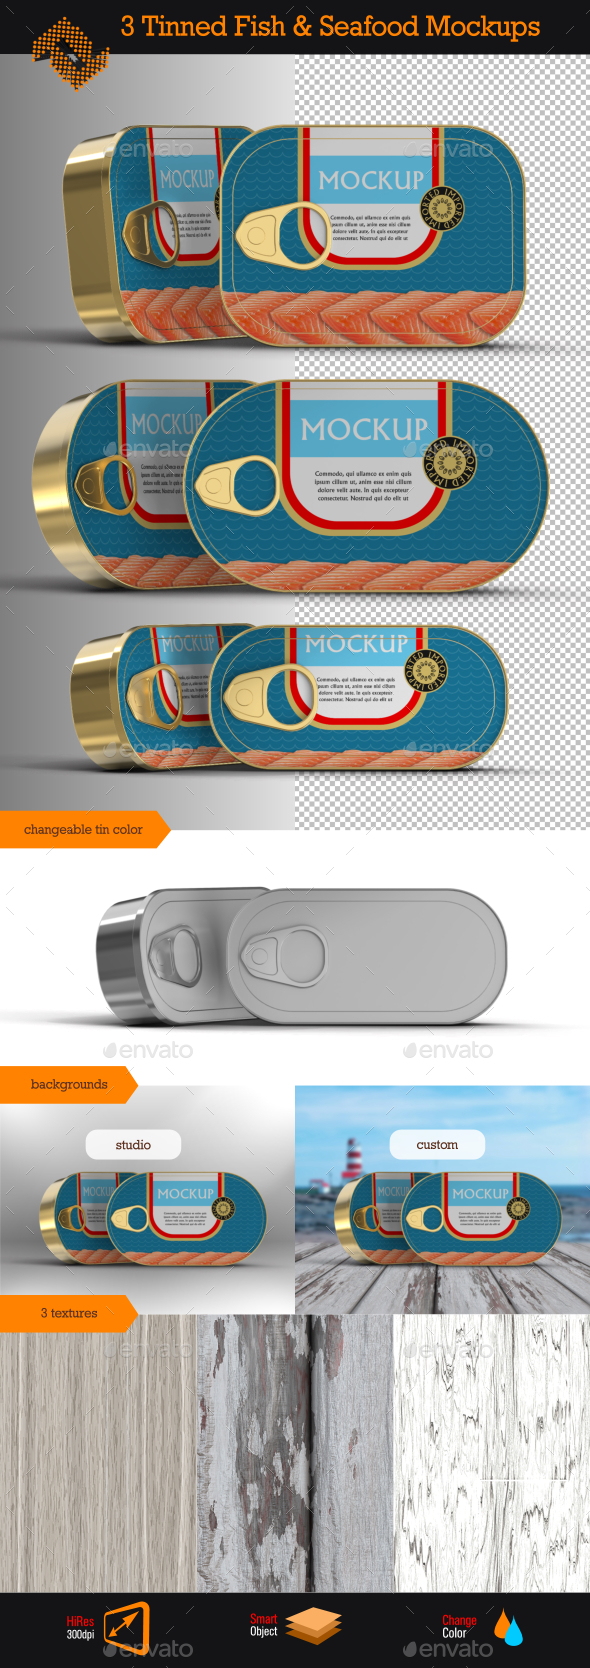 GraphicRiver Tinned Fish & Seafood Mockup 9955882